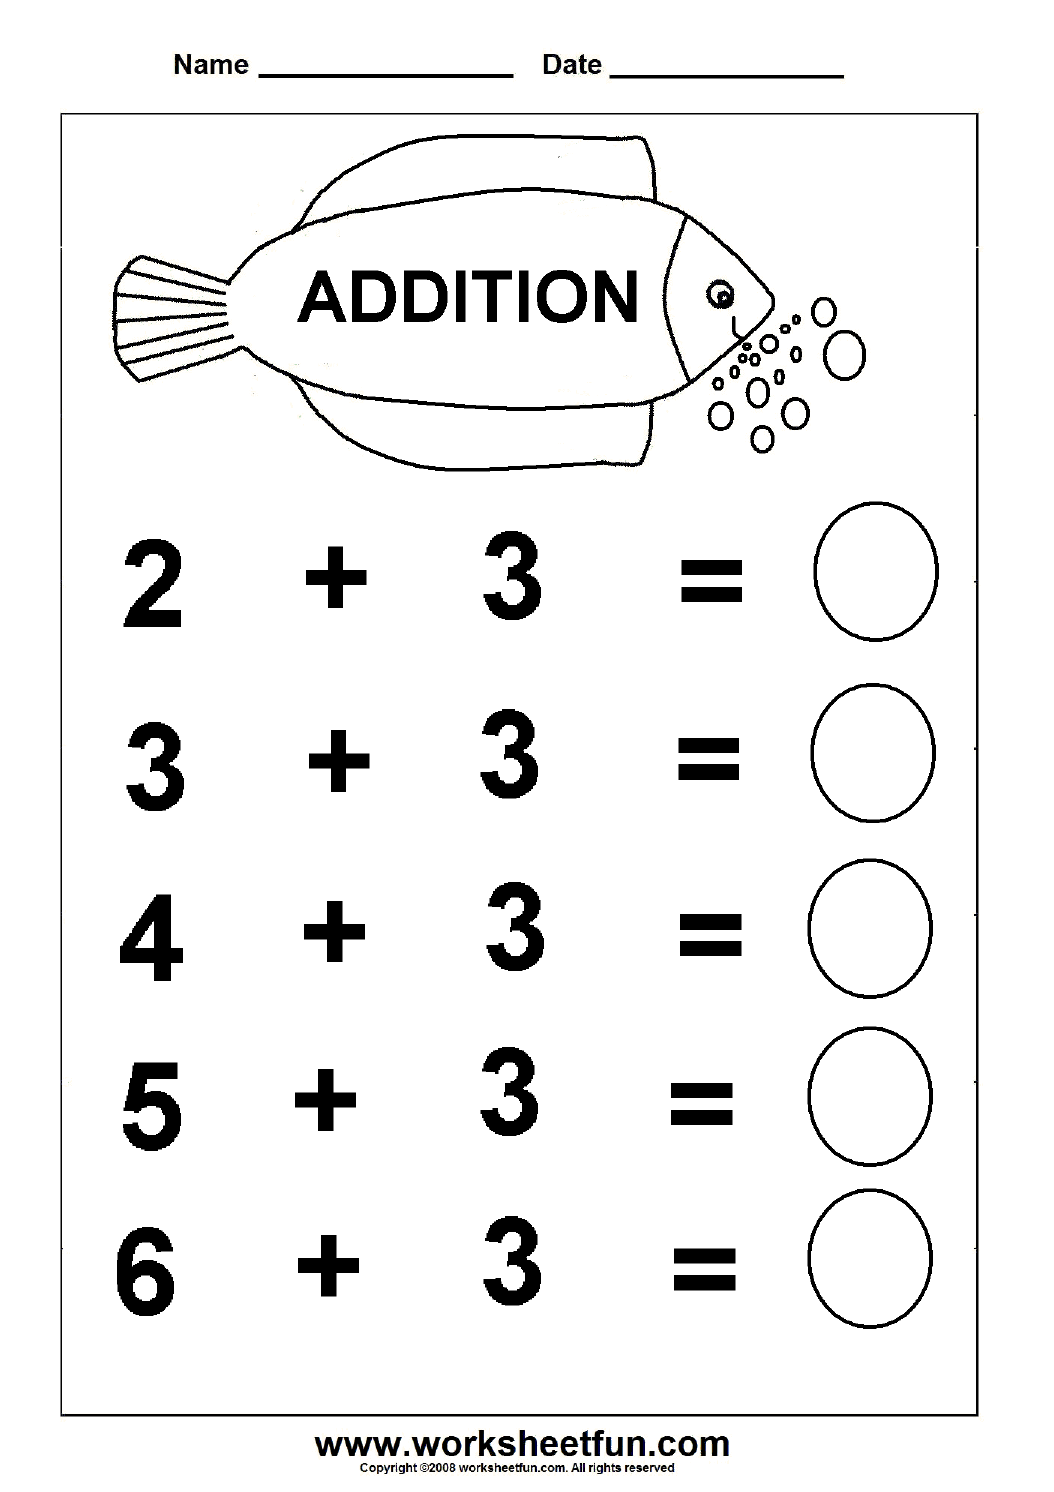 Worksheets Easy Addition Worksheets beginner addition 6 kindergarten worksheets free first grade worksheets